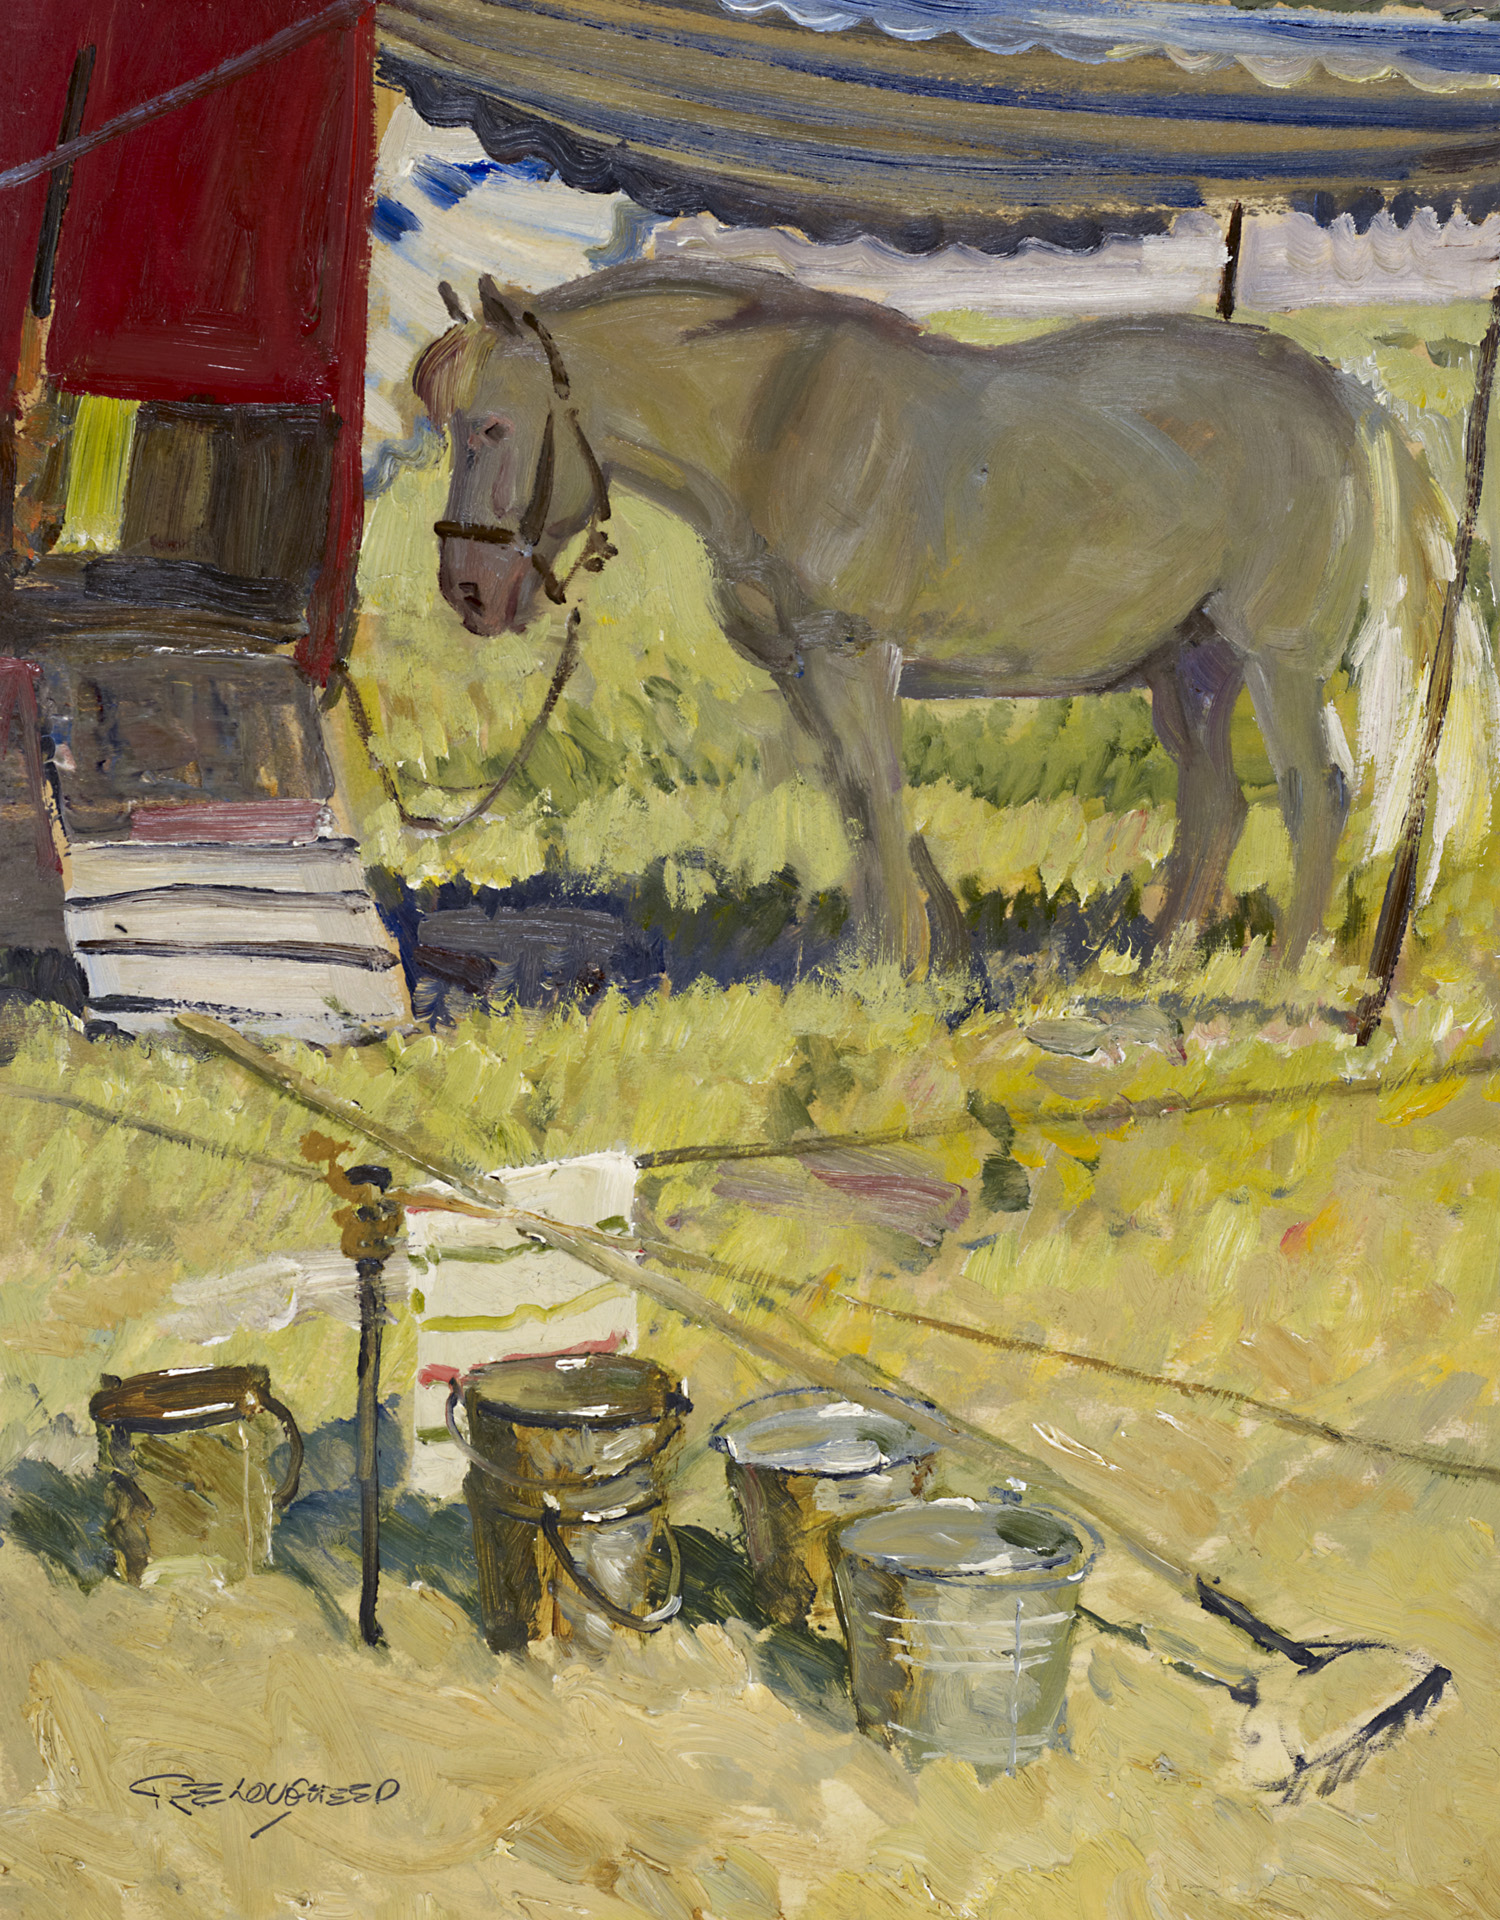 Under the Tent by  Robert Lougheed - Masterpiece Online